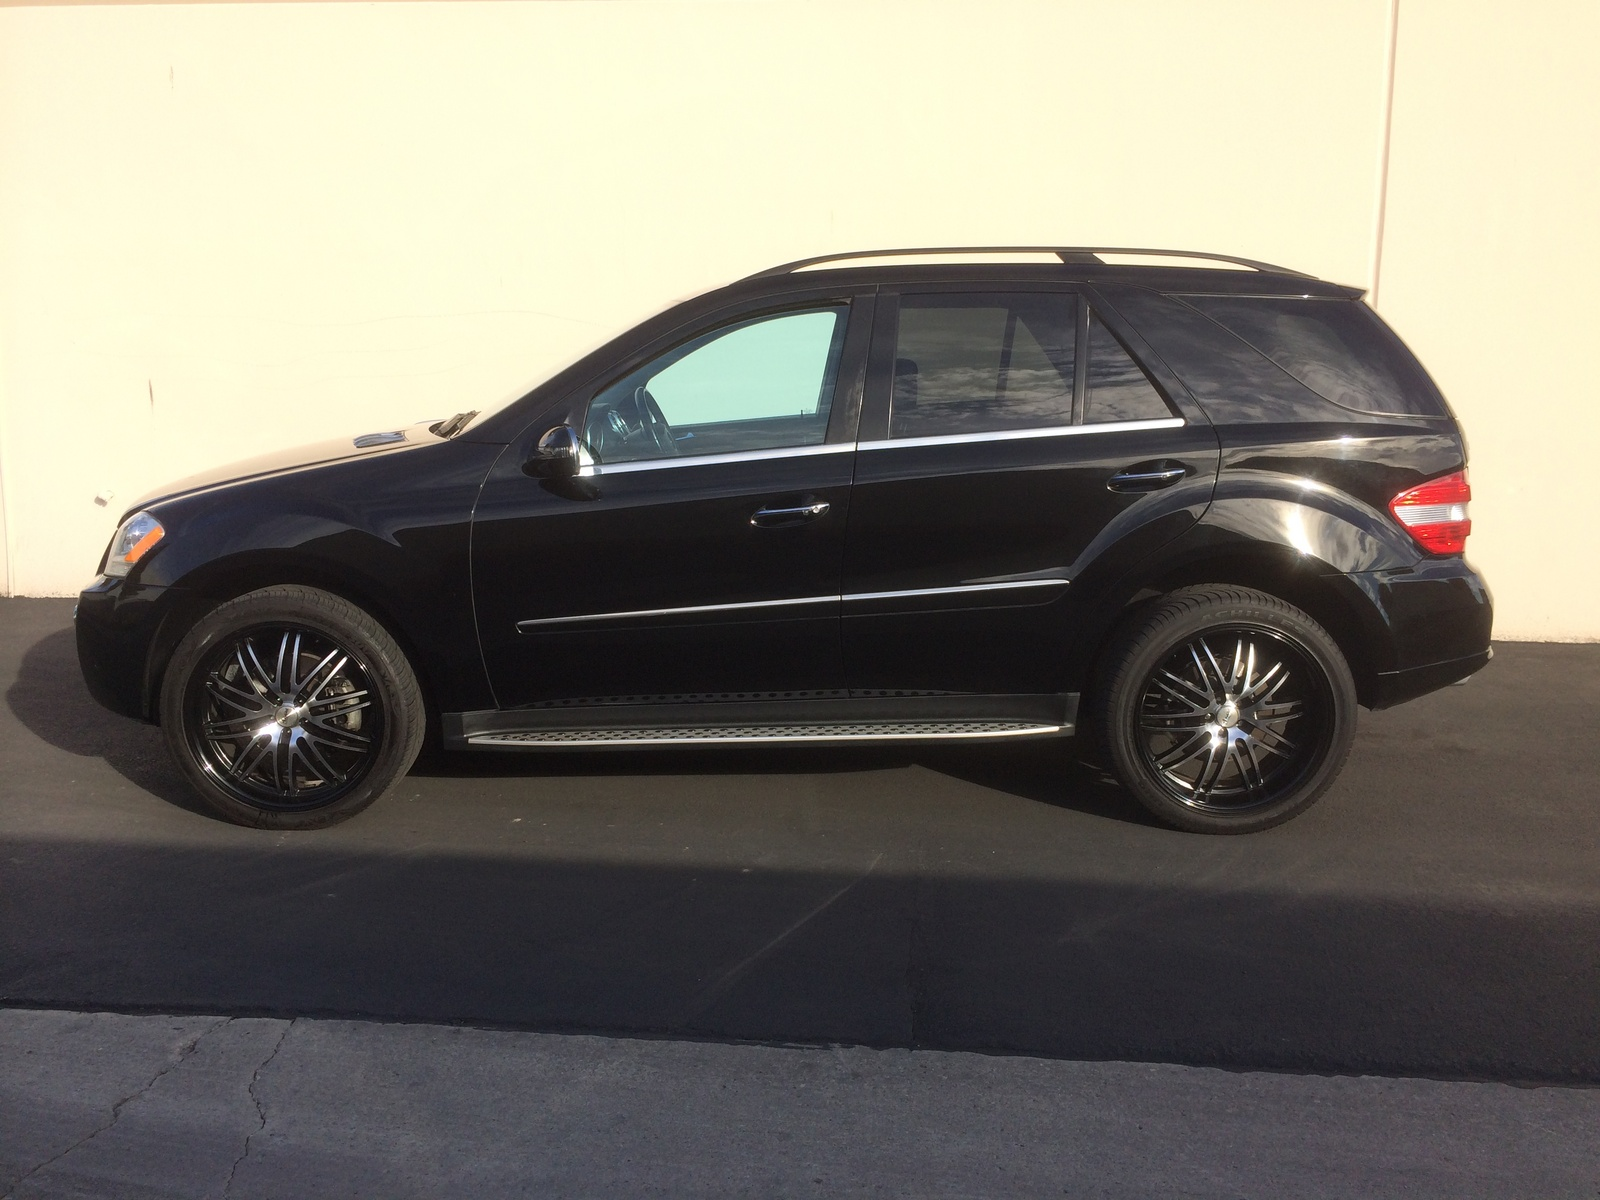 2008 mercedes benz m class pictures cargurus for Mercedes benz ml550 price